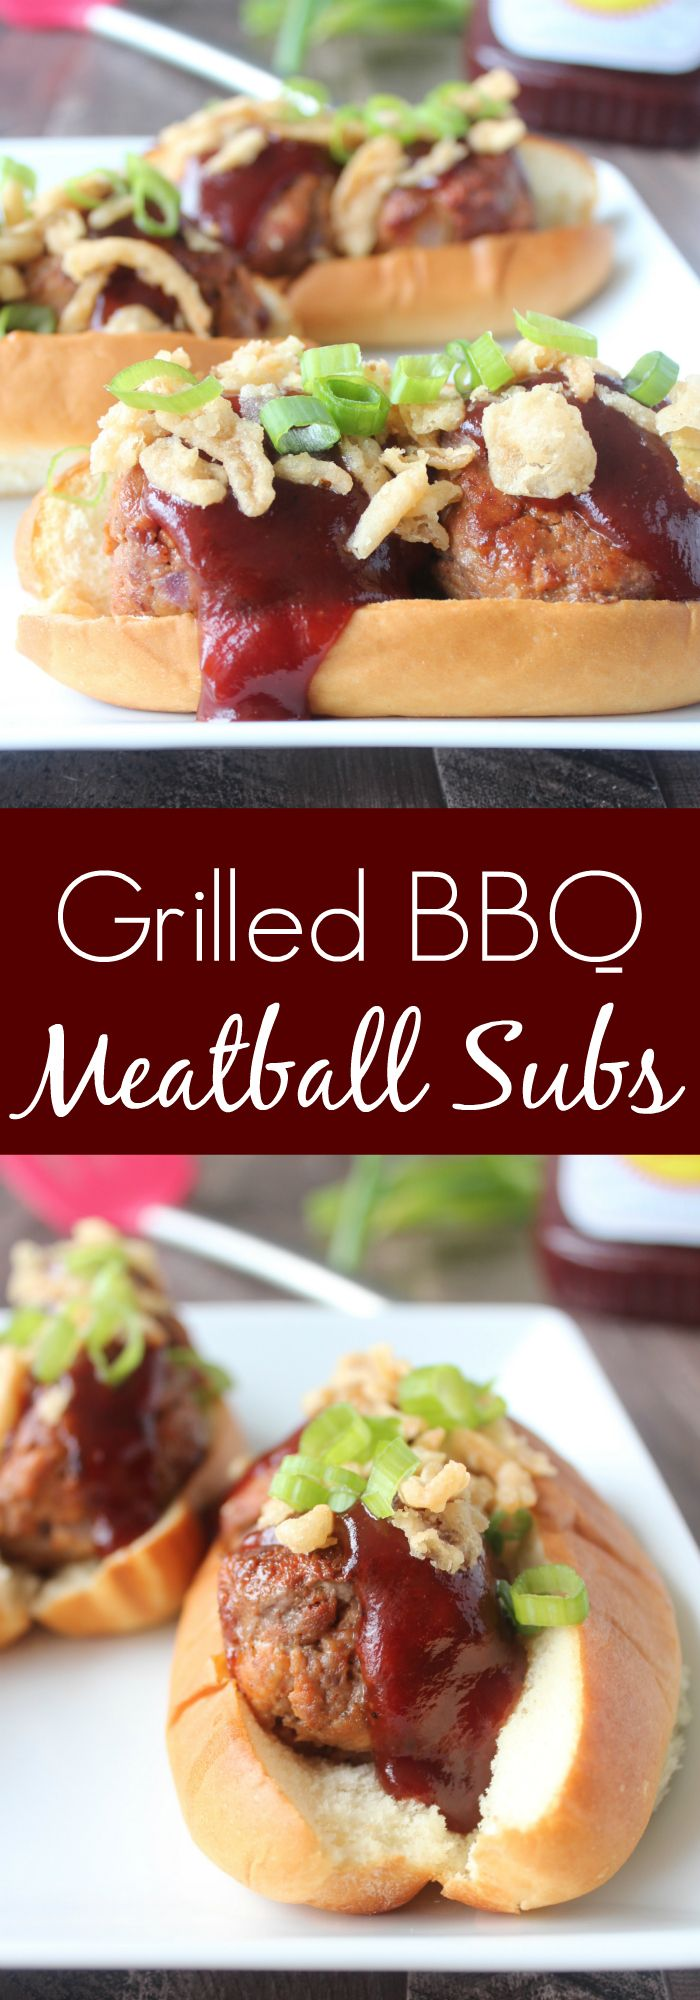 These scrumptious BBQ Meatball Subs on Kings Hawaiian Hot Dog Buns are easily whipped up in 30 minutes, making them perfect for weeknight dinners or weekend BBQs!